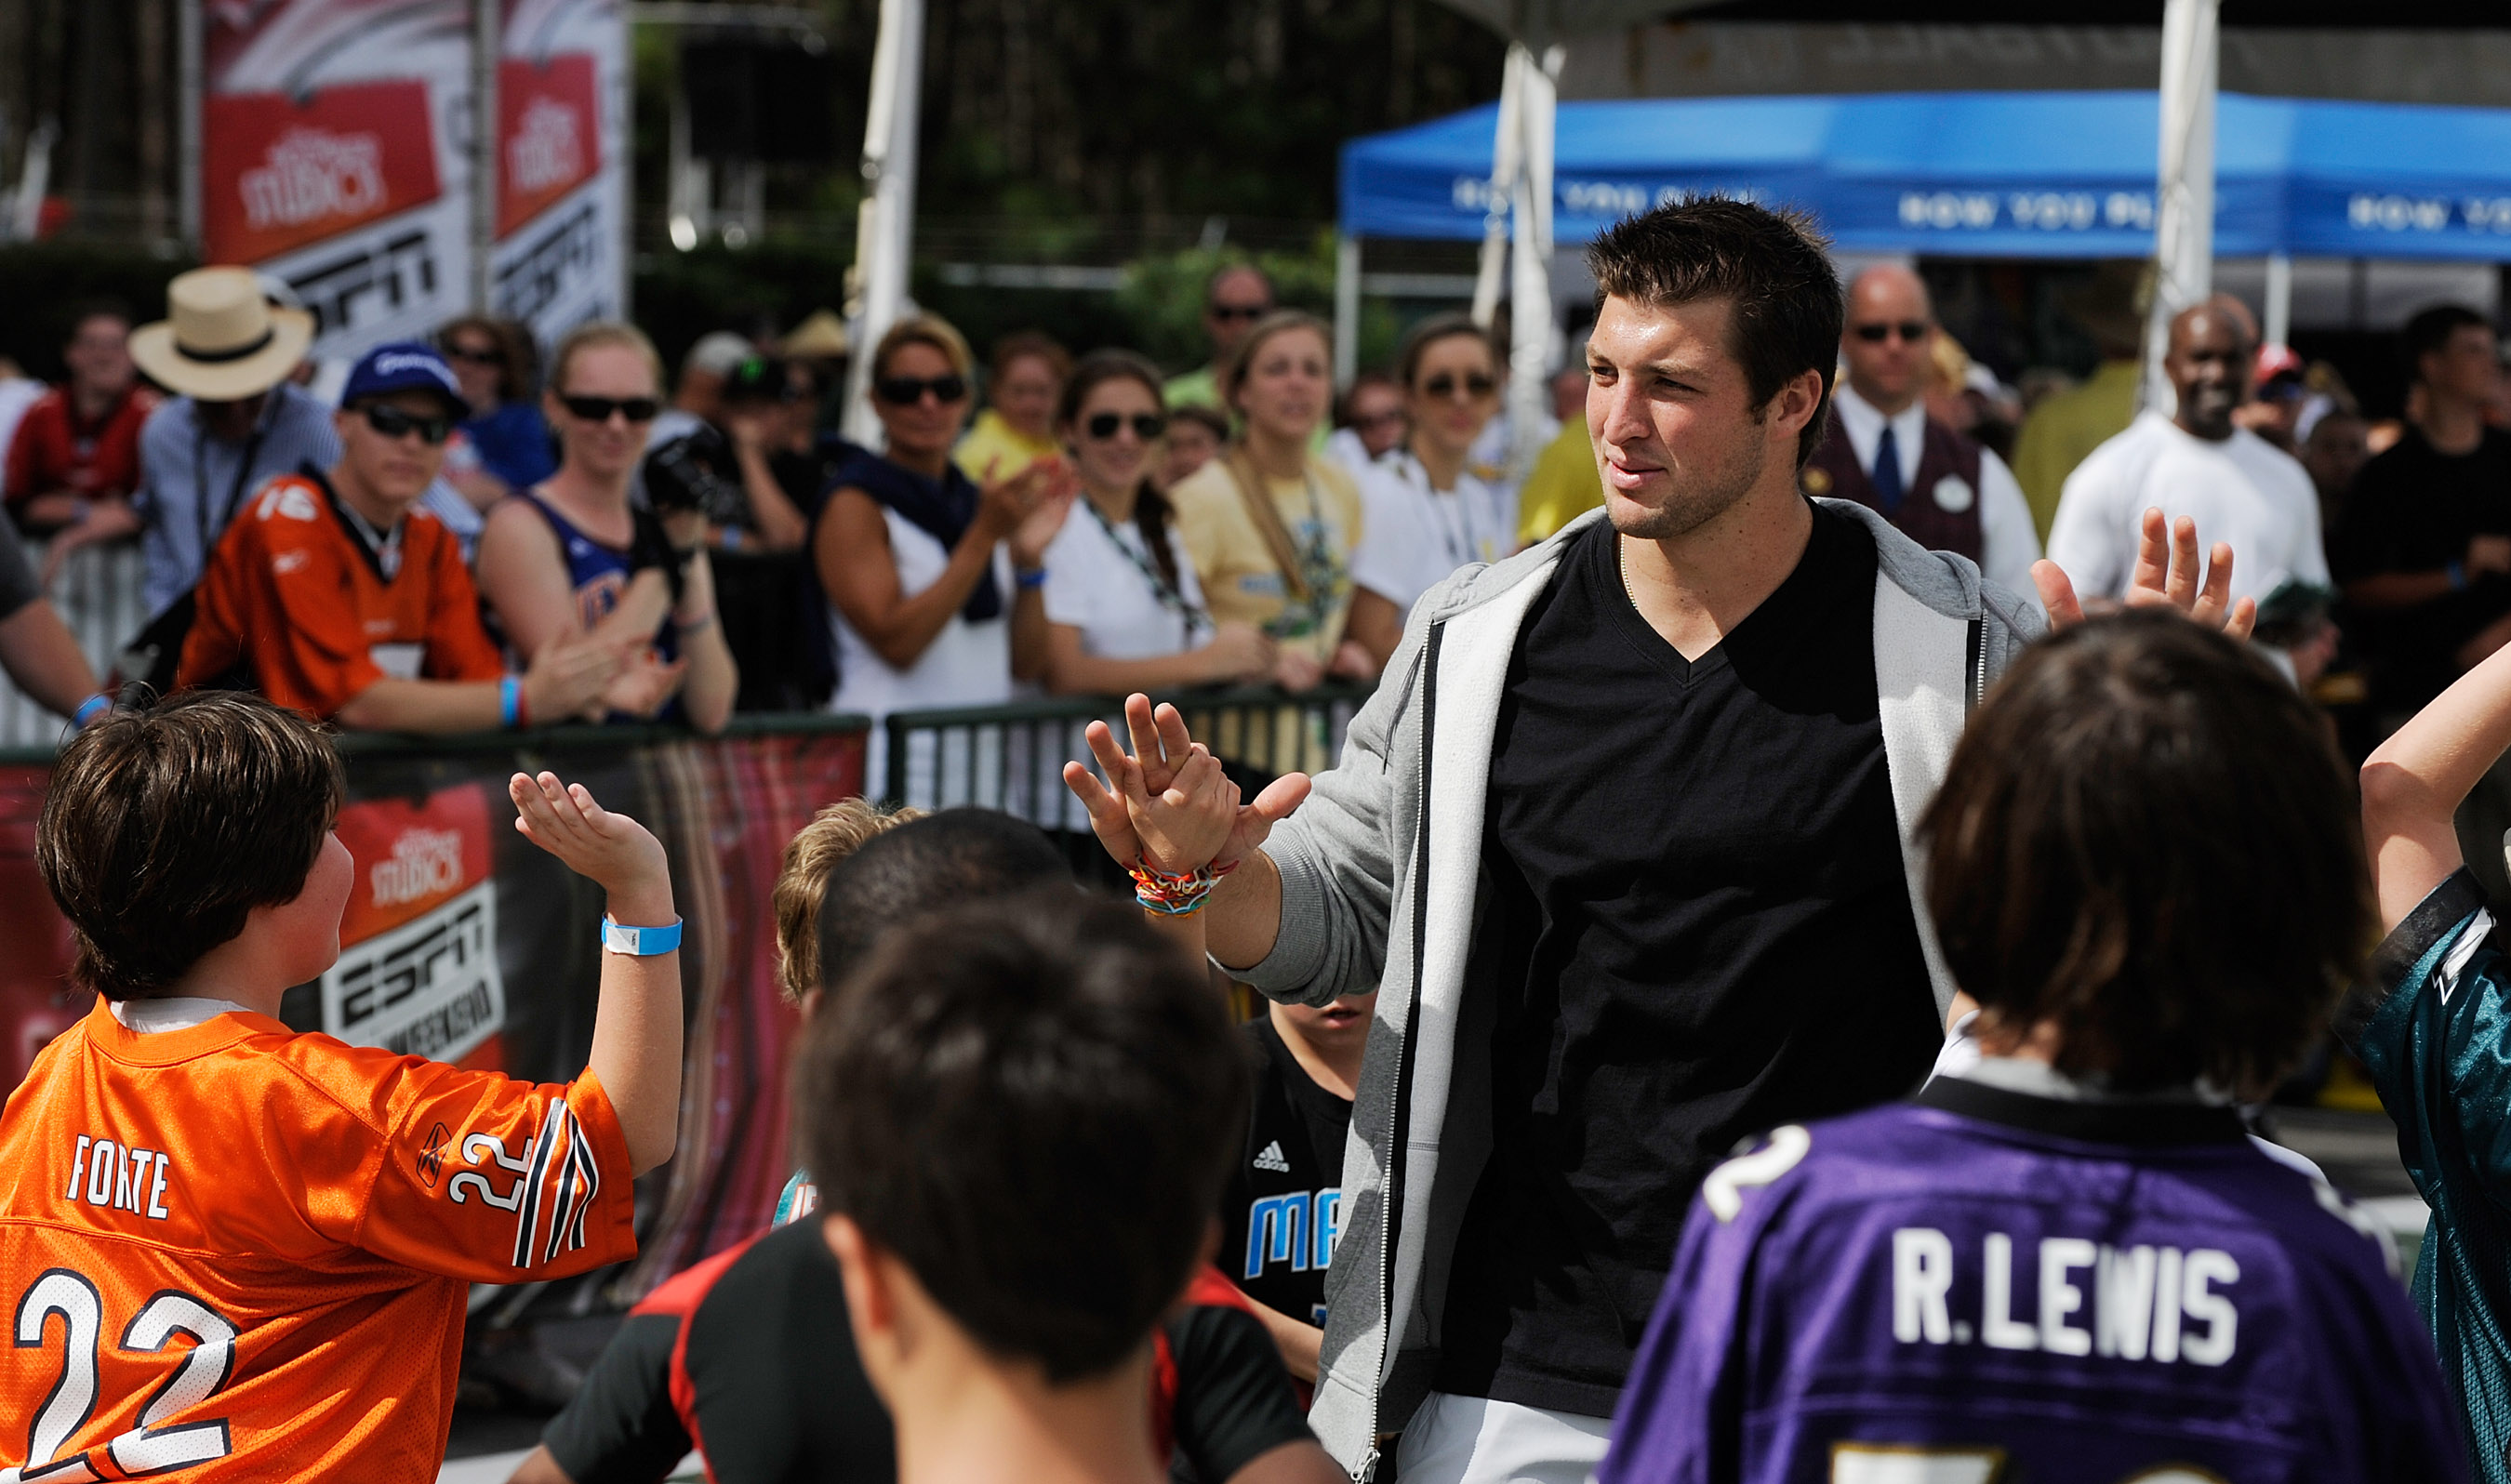 LAKE BUENA VISTA, FL - MARCH 05: In this handout photo provided by Disney Parks, Denver Broncos Quarterback Tim Tebow congratulates a group of young fans after a game of flag football at 'ESPN The Weekend' on March 05, 2011 at Disney's Hollywood Studios P